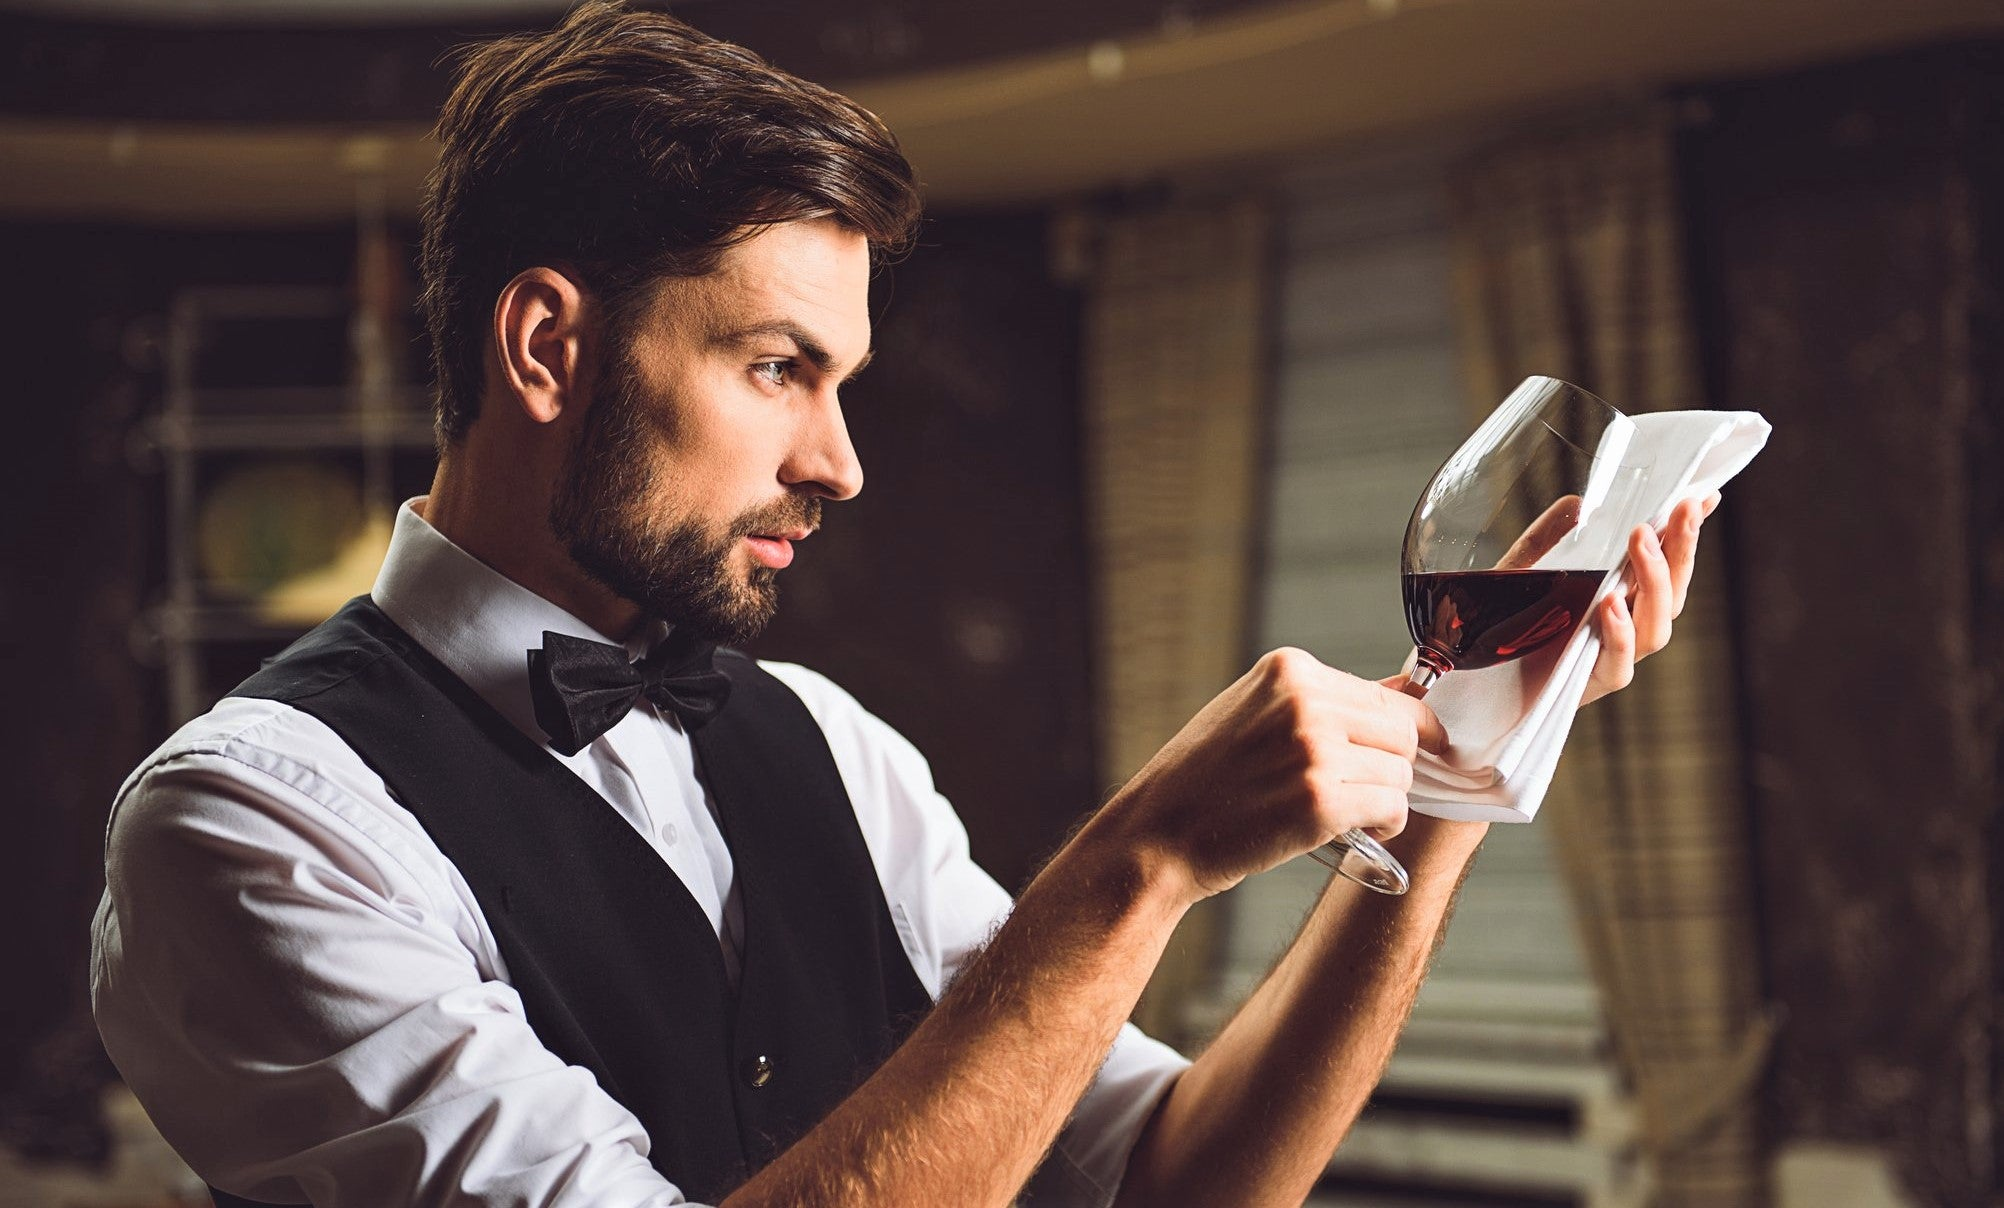 sommelier in white shirt and black waistcoat inspects glass of red wine